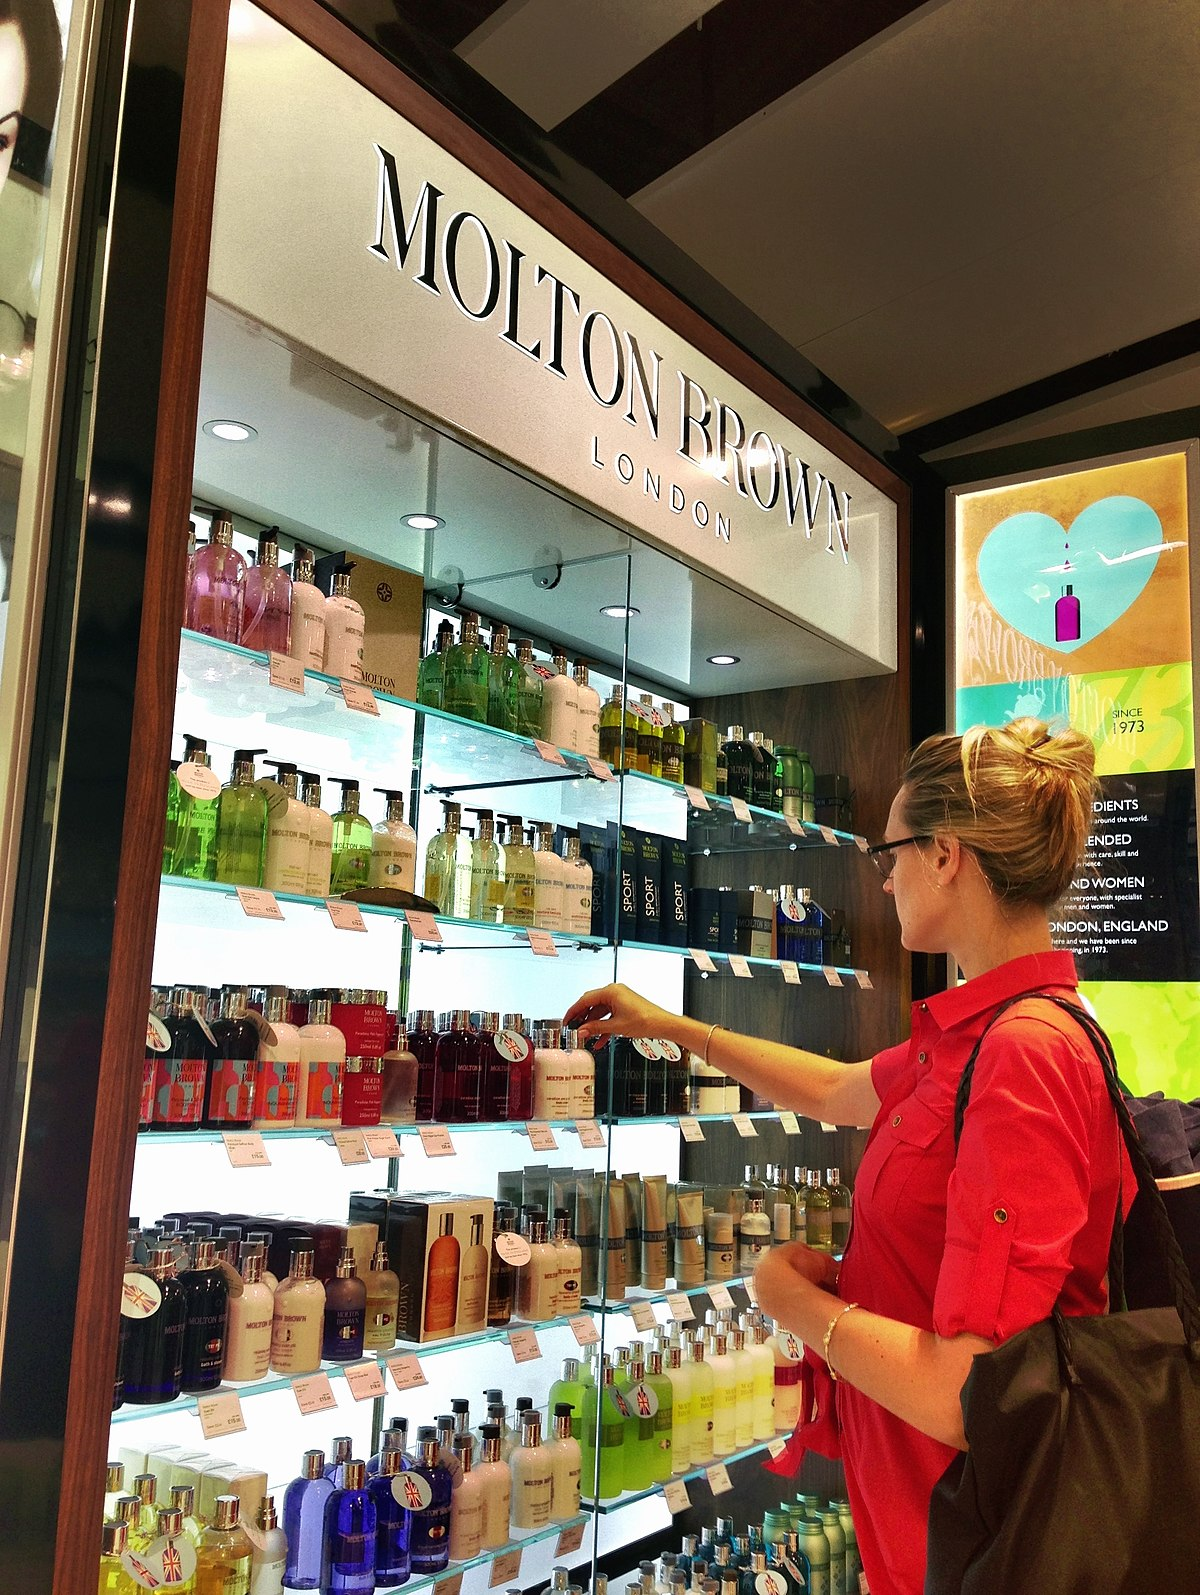 Molton Brown Wikipedia